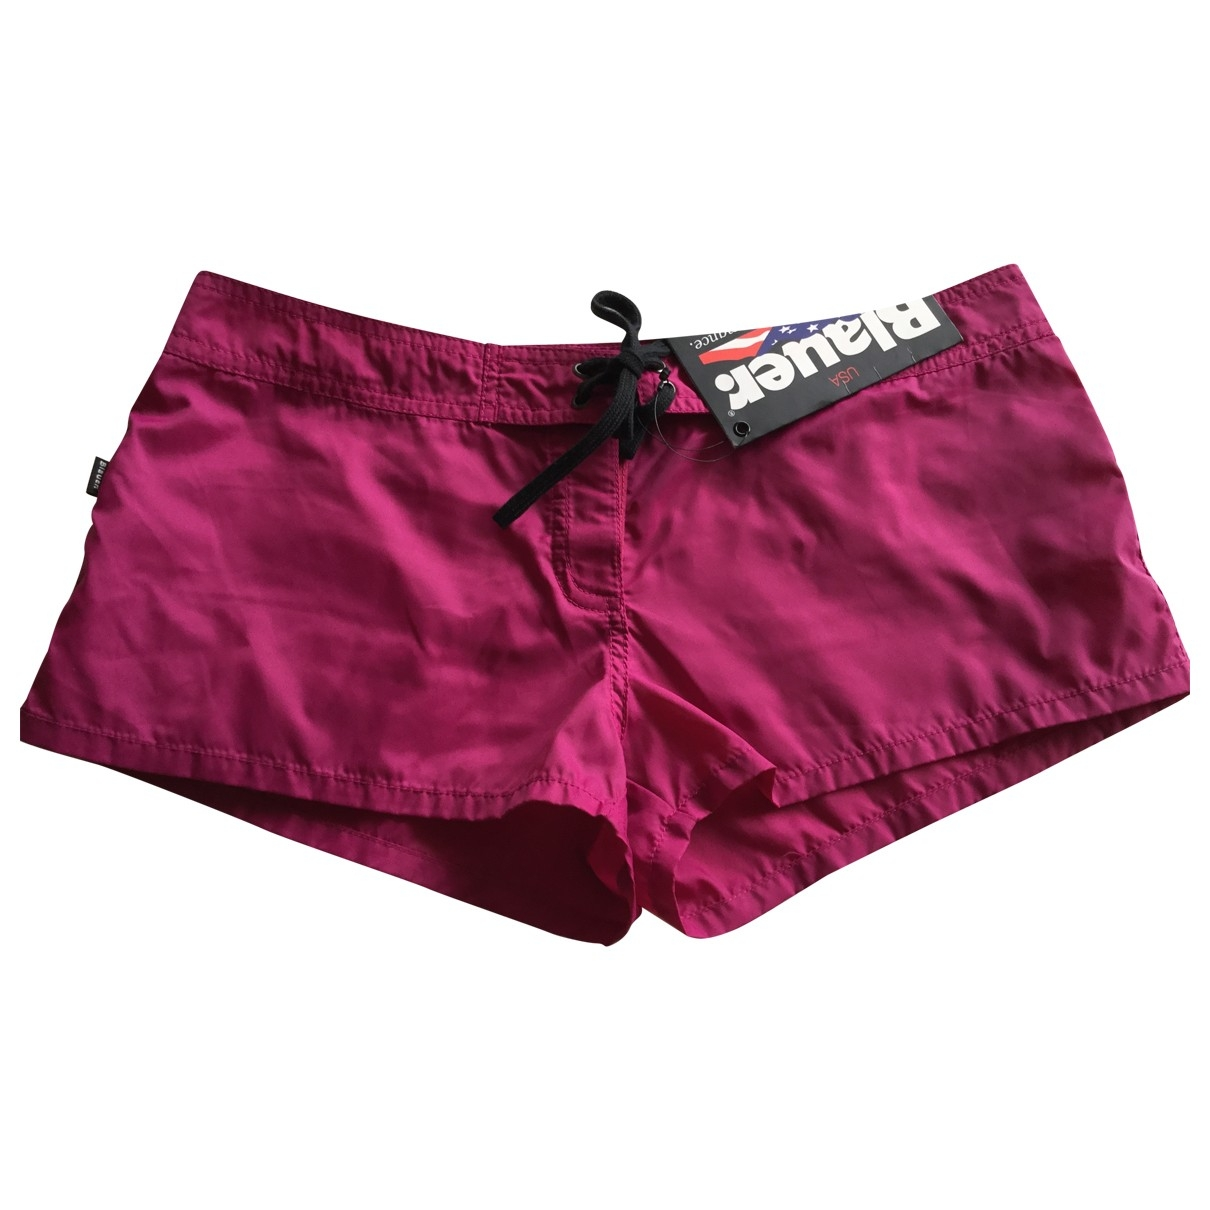 Blauer \N Shorts in  Rosa Polyester